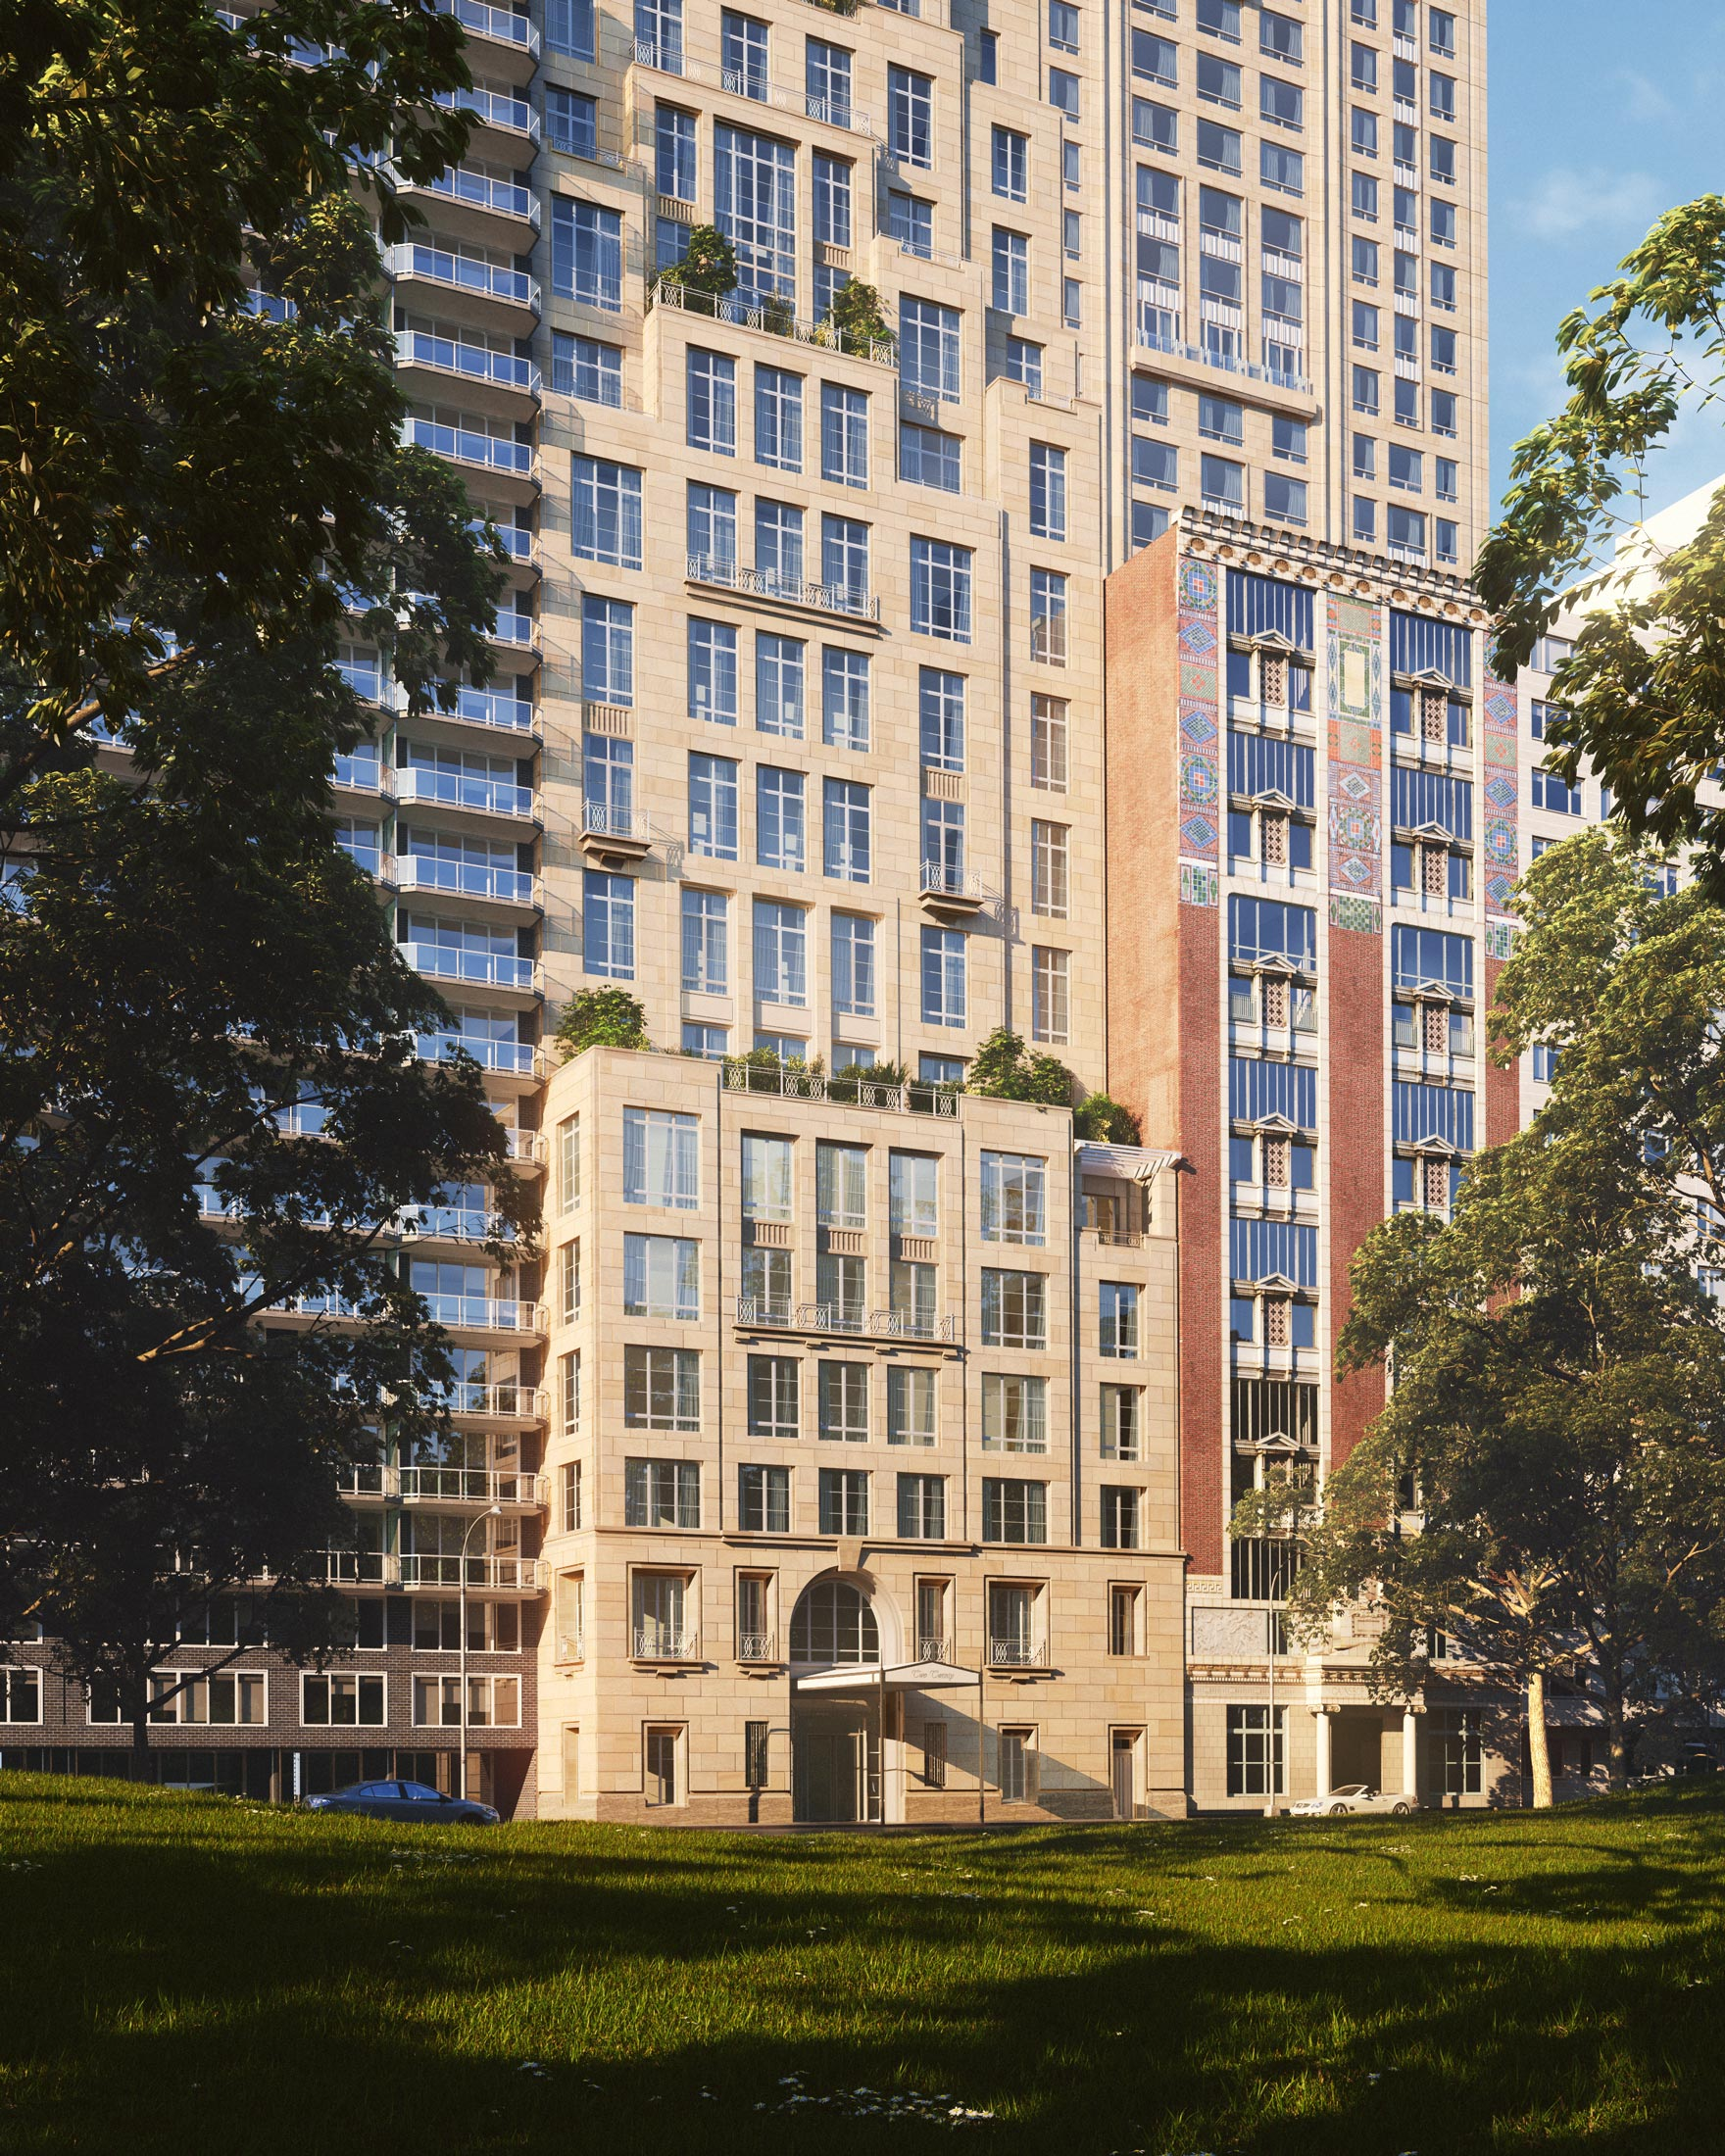 Architectural Rendering of the entrance of the 220 Central Park South project located in Midtown, New York City